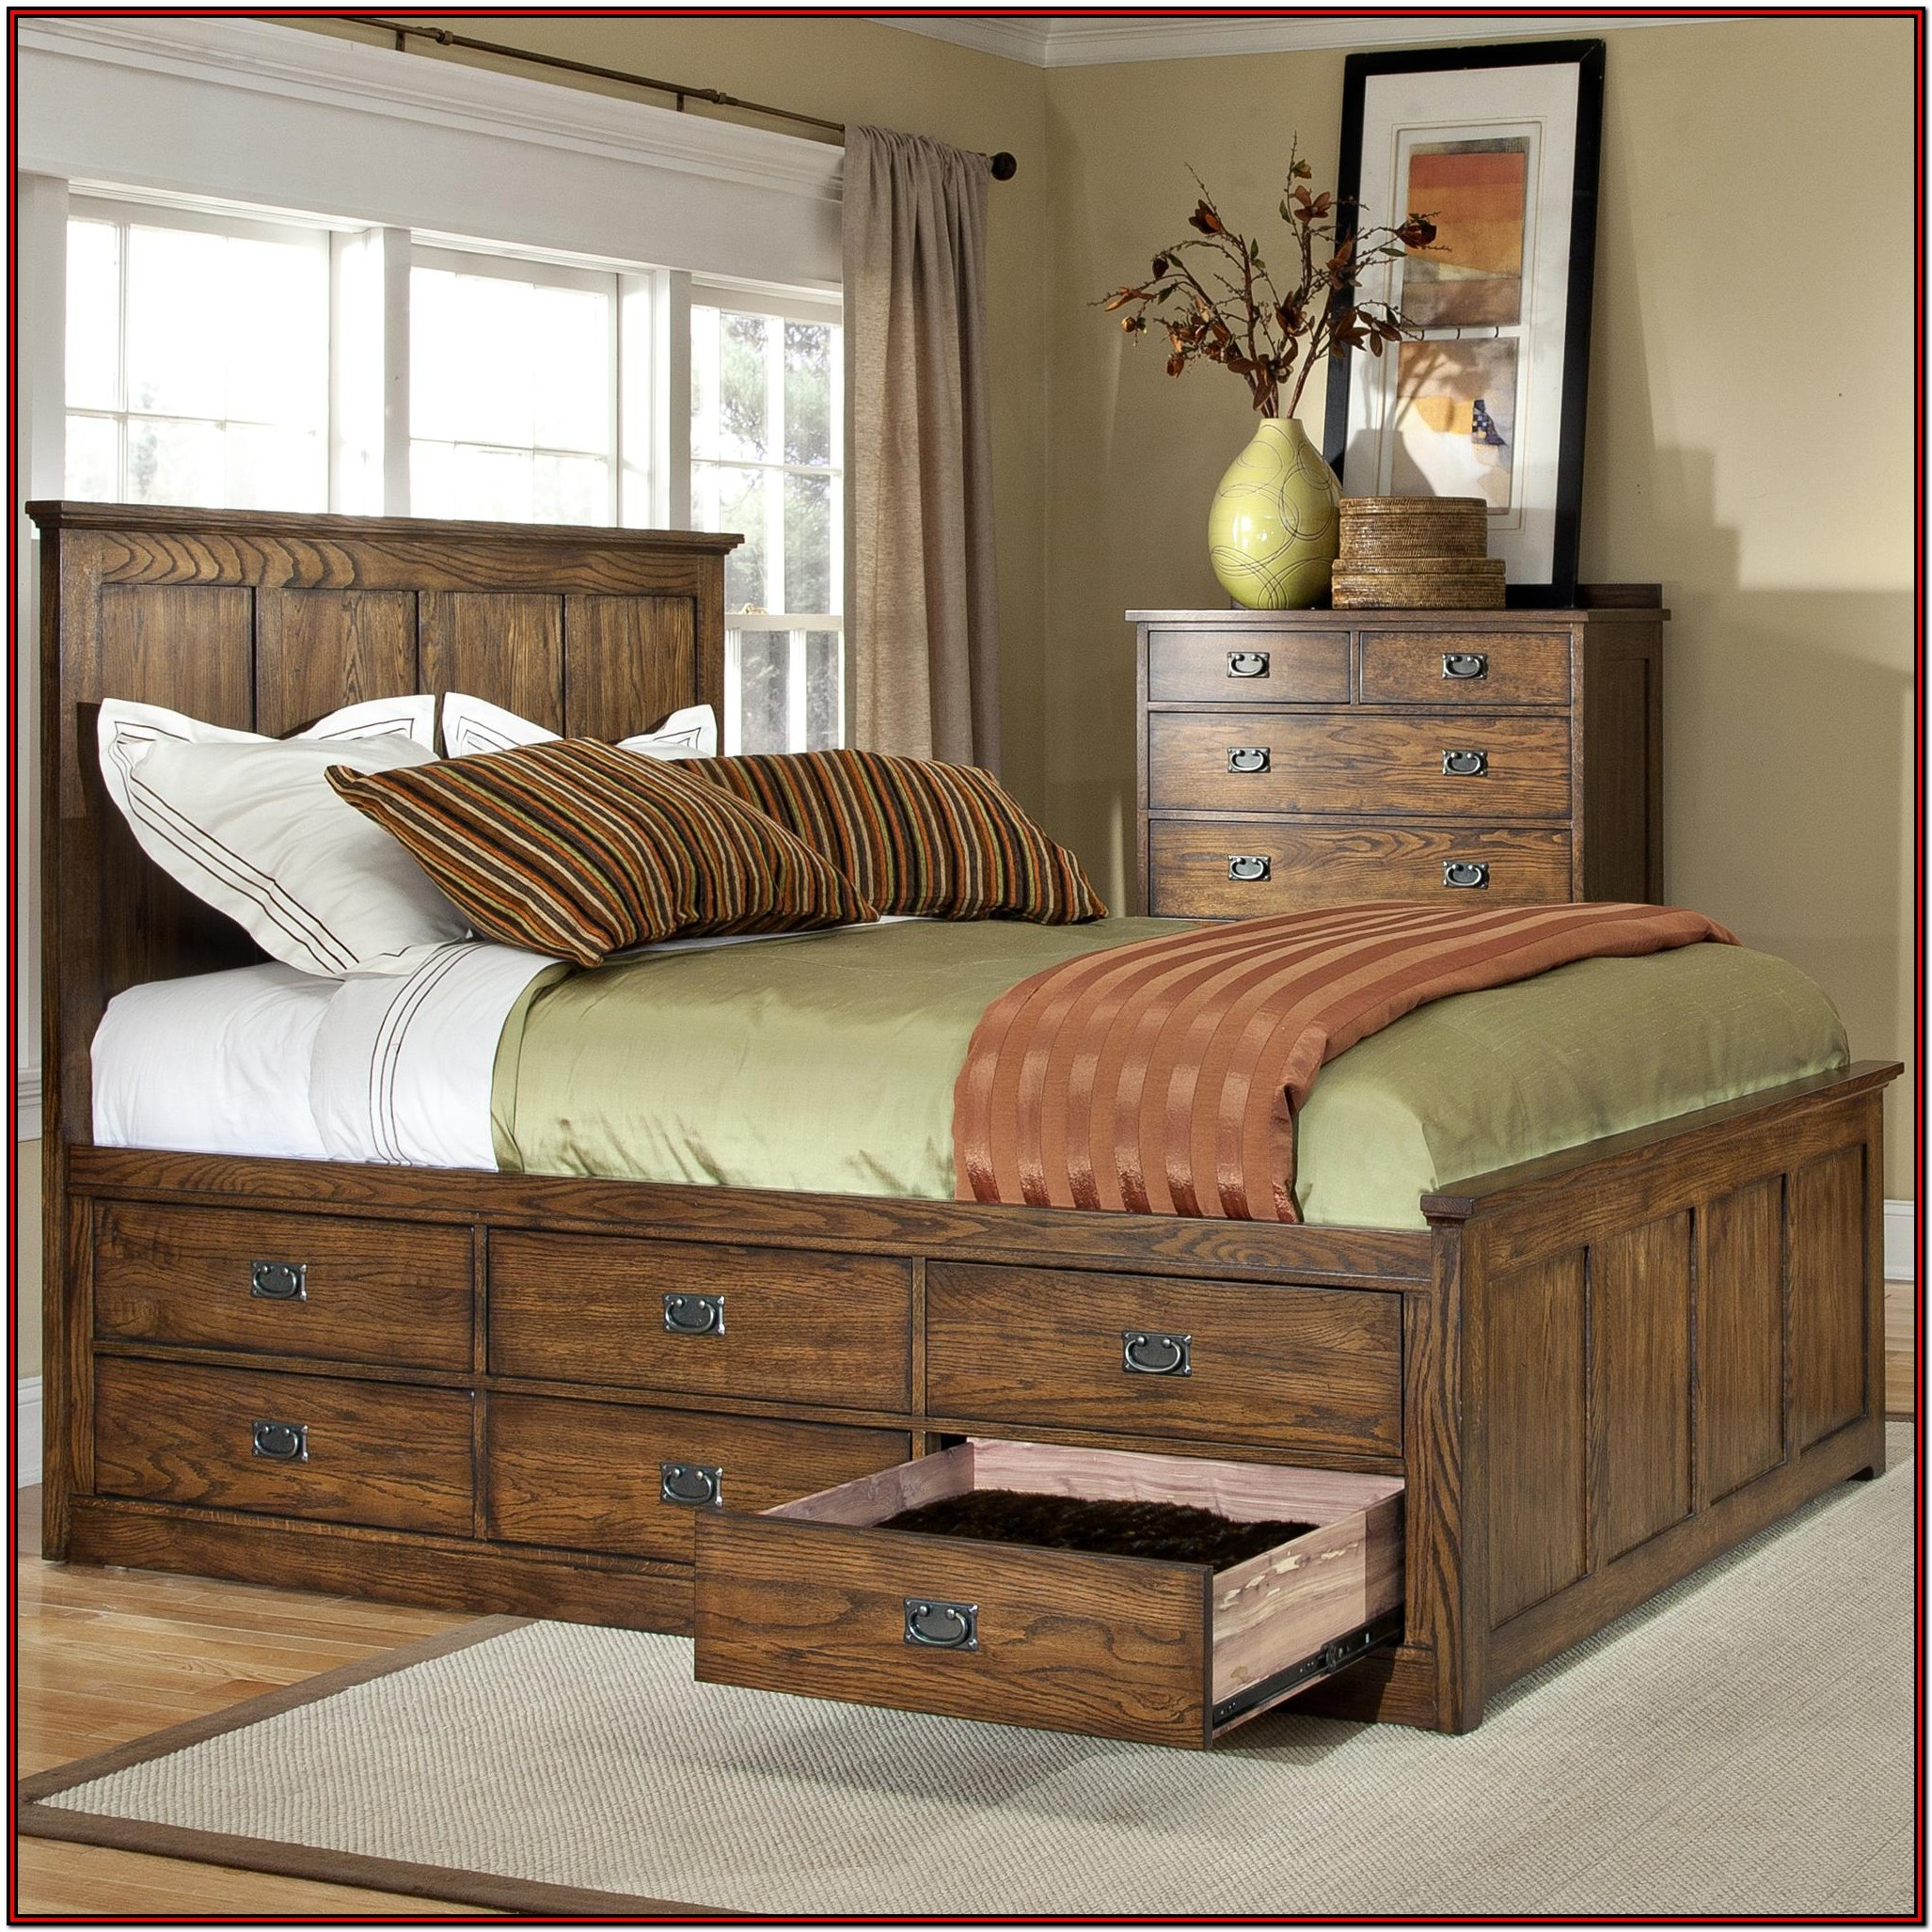 King Size Beds With Underbed Storage